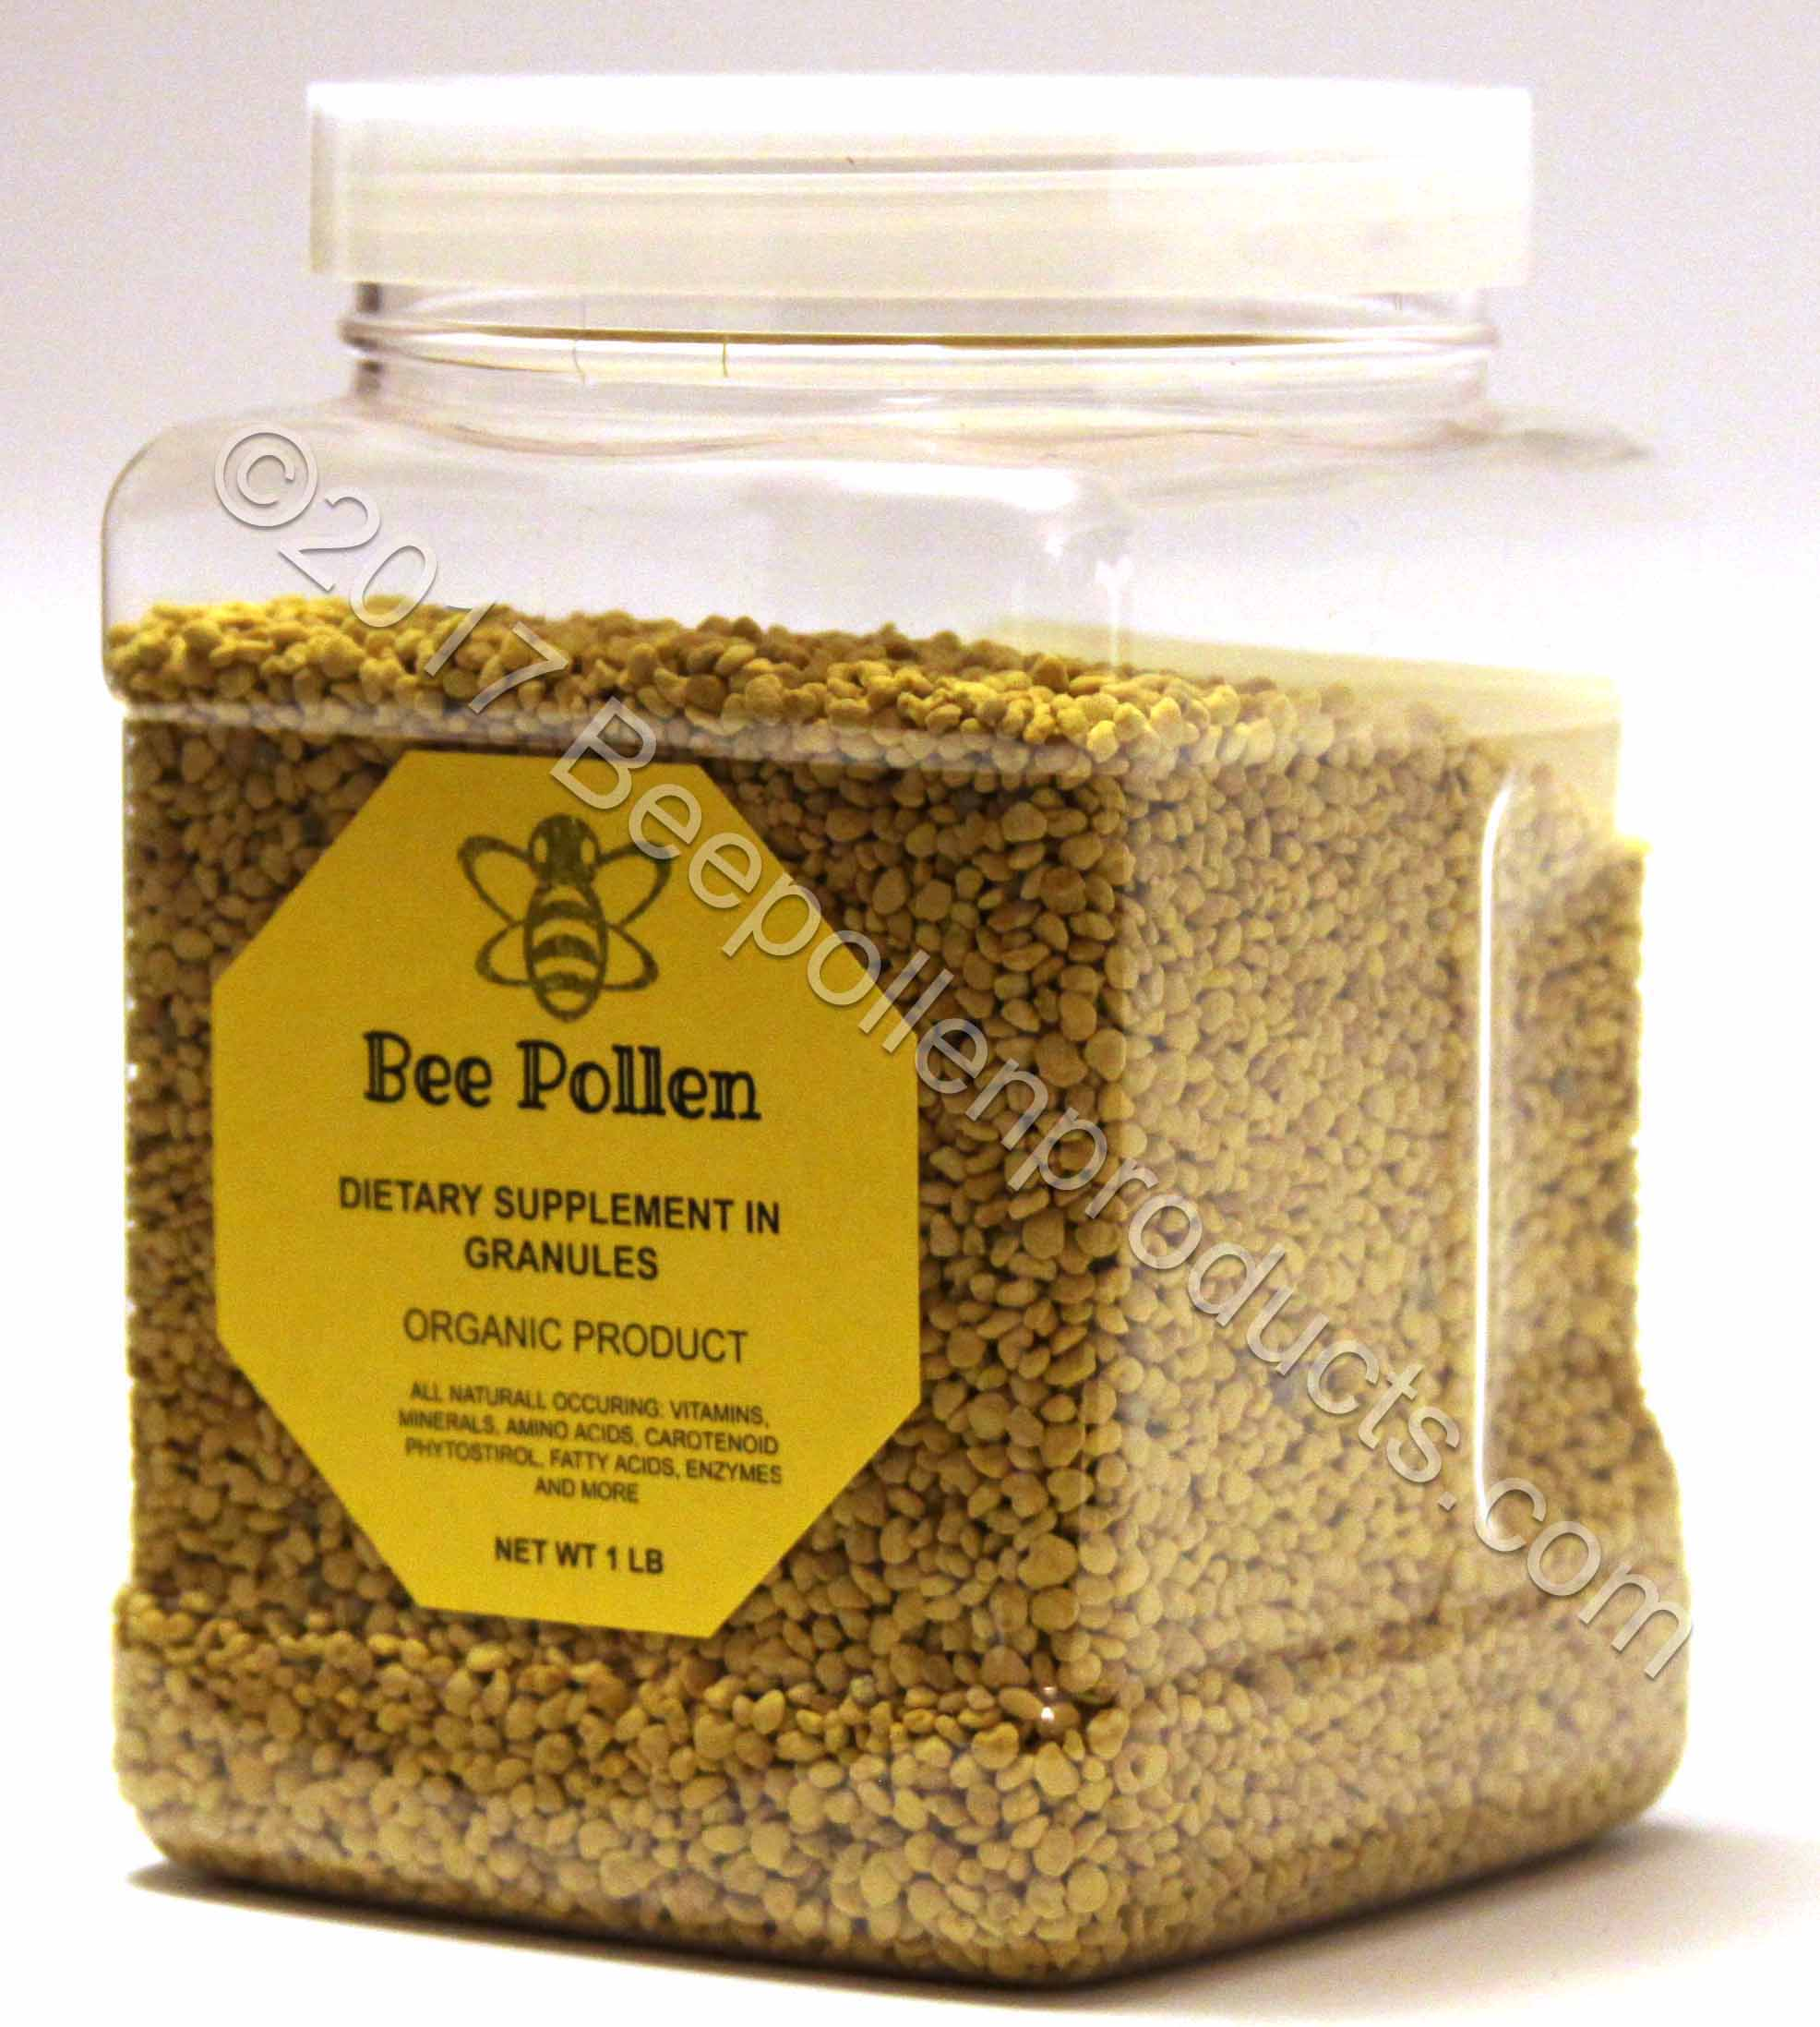 BEE POLLEN 100% Pure Organic Granules 1 lb in Jar